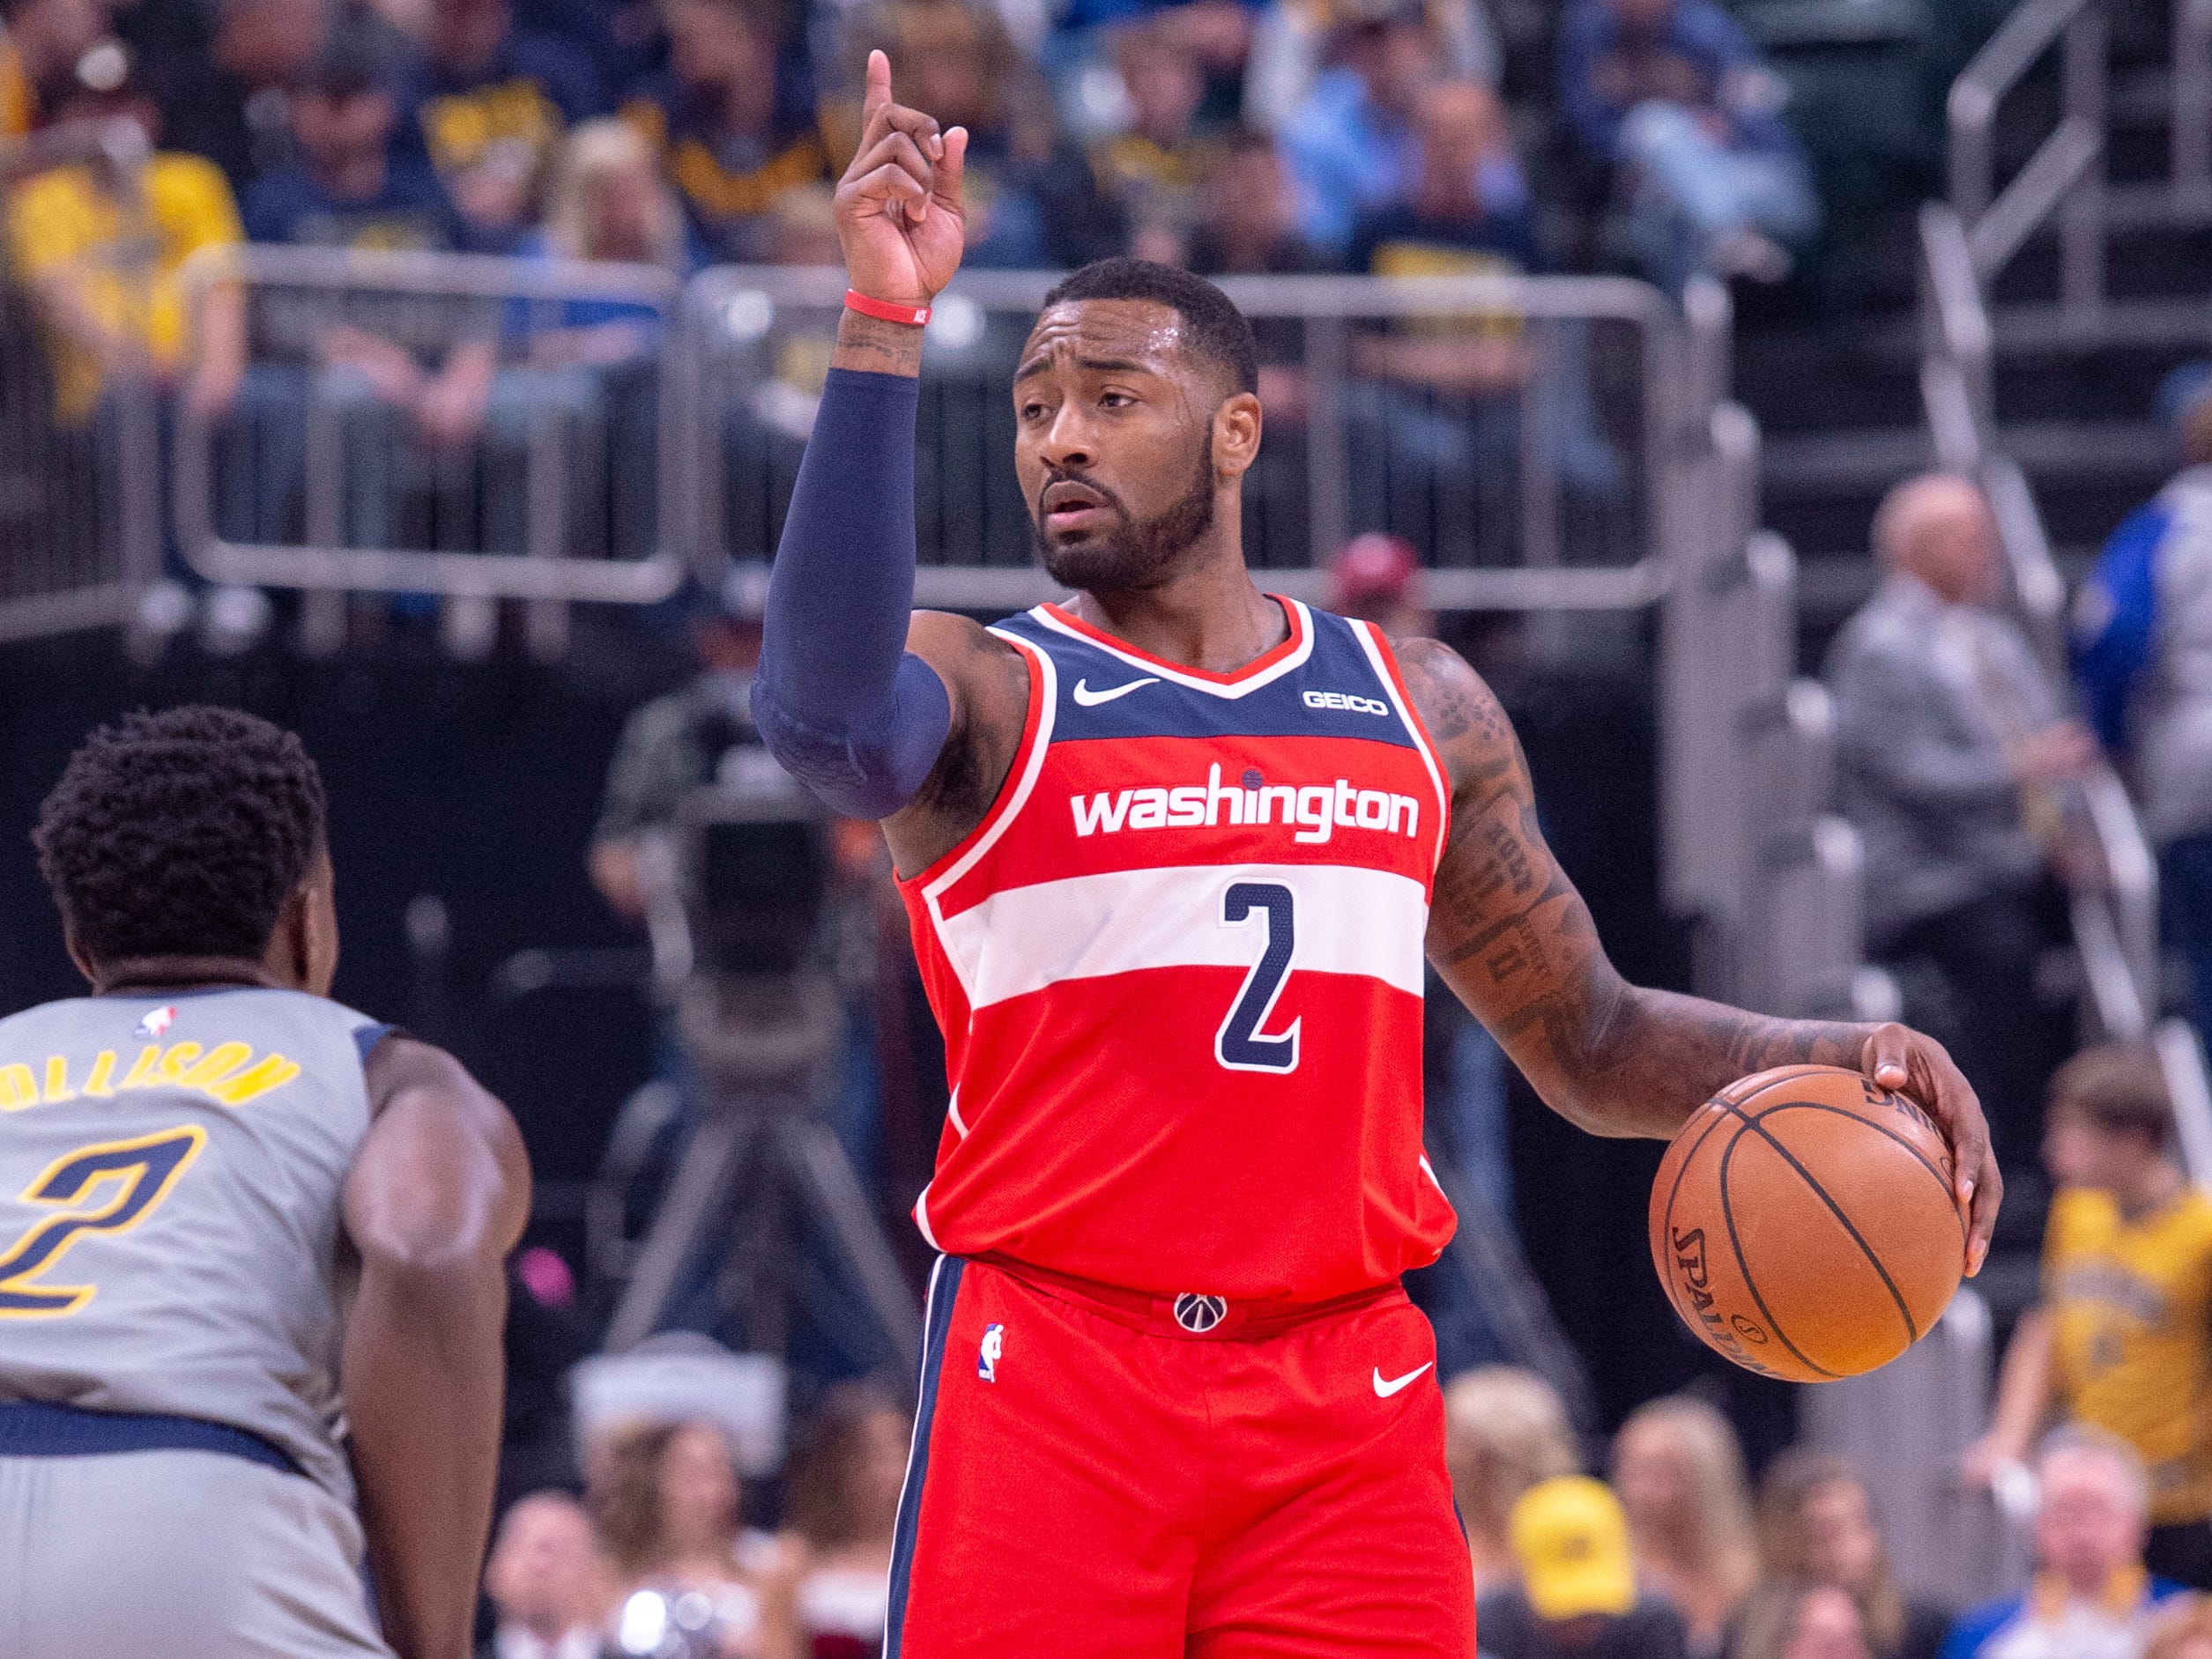 Washington Wizards guard John Wall (2) brings the ball up court during an NBA basketball game, Sunday, Dec. 23, 2018, in Indianapolis. Indiana Pacers won, 105-89.